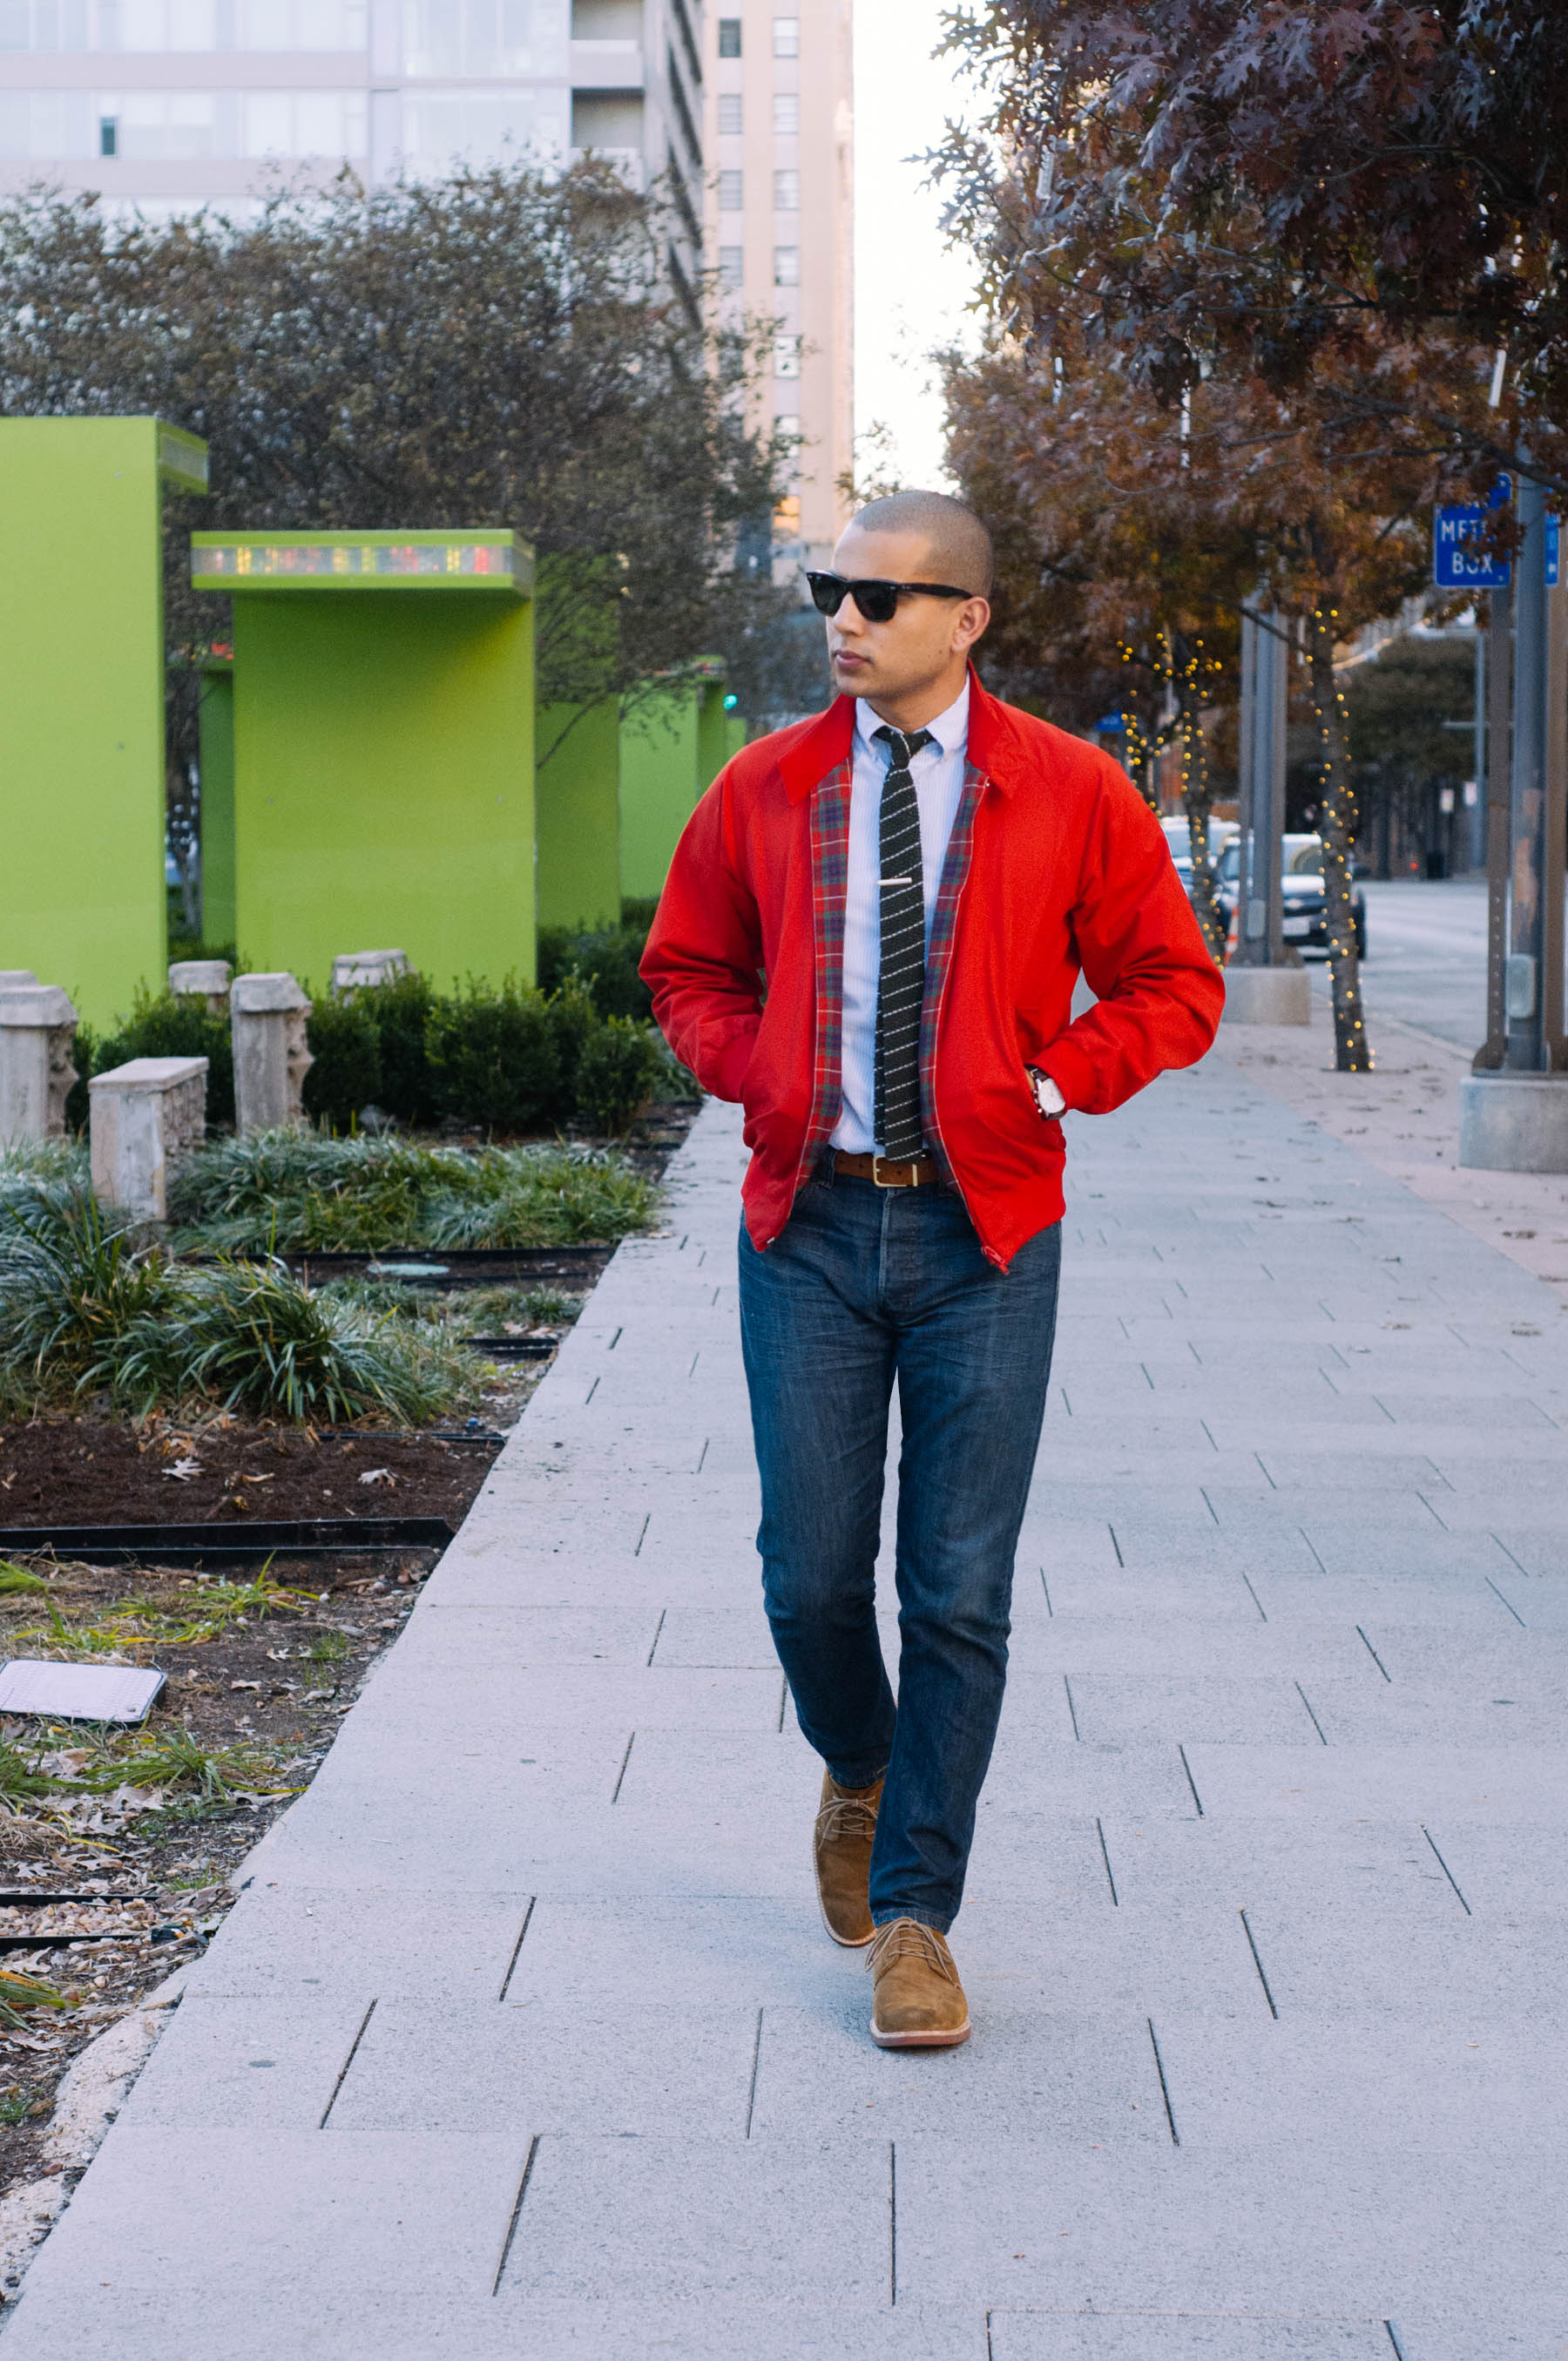 Jacket:  Baracuta for J.Crew  | Shirt:  J.Crew  | Jeans:  Levi's  | Shoes: Sperry Gold Cup (similar  here ) | Tie: Billy Reid (similar  here ) | Belt: American Apparel | Sunglasses:  RayBan  | Tie Clip: The Tie Bar | Watch: Lucien Piccard | Socks: Merona